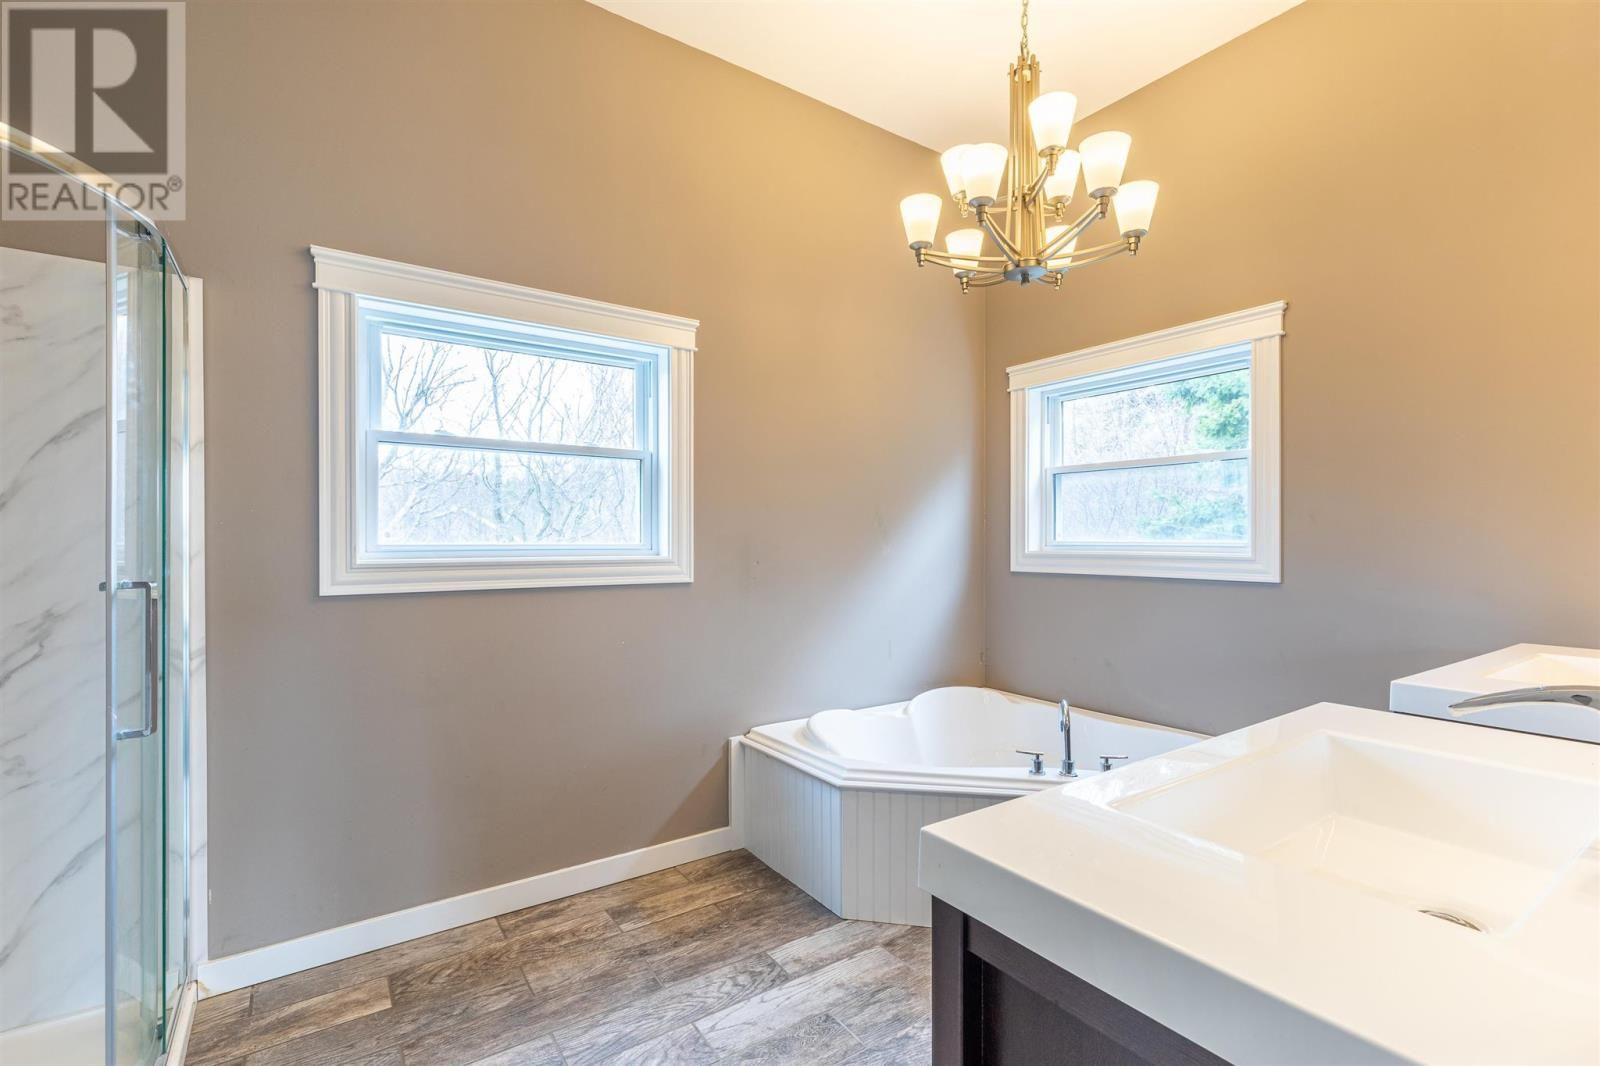 Photo 17: Photos: 5 Cherry Lane in Stratford: House for sale : MLS®# 202119303